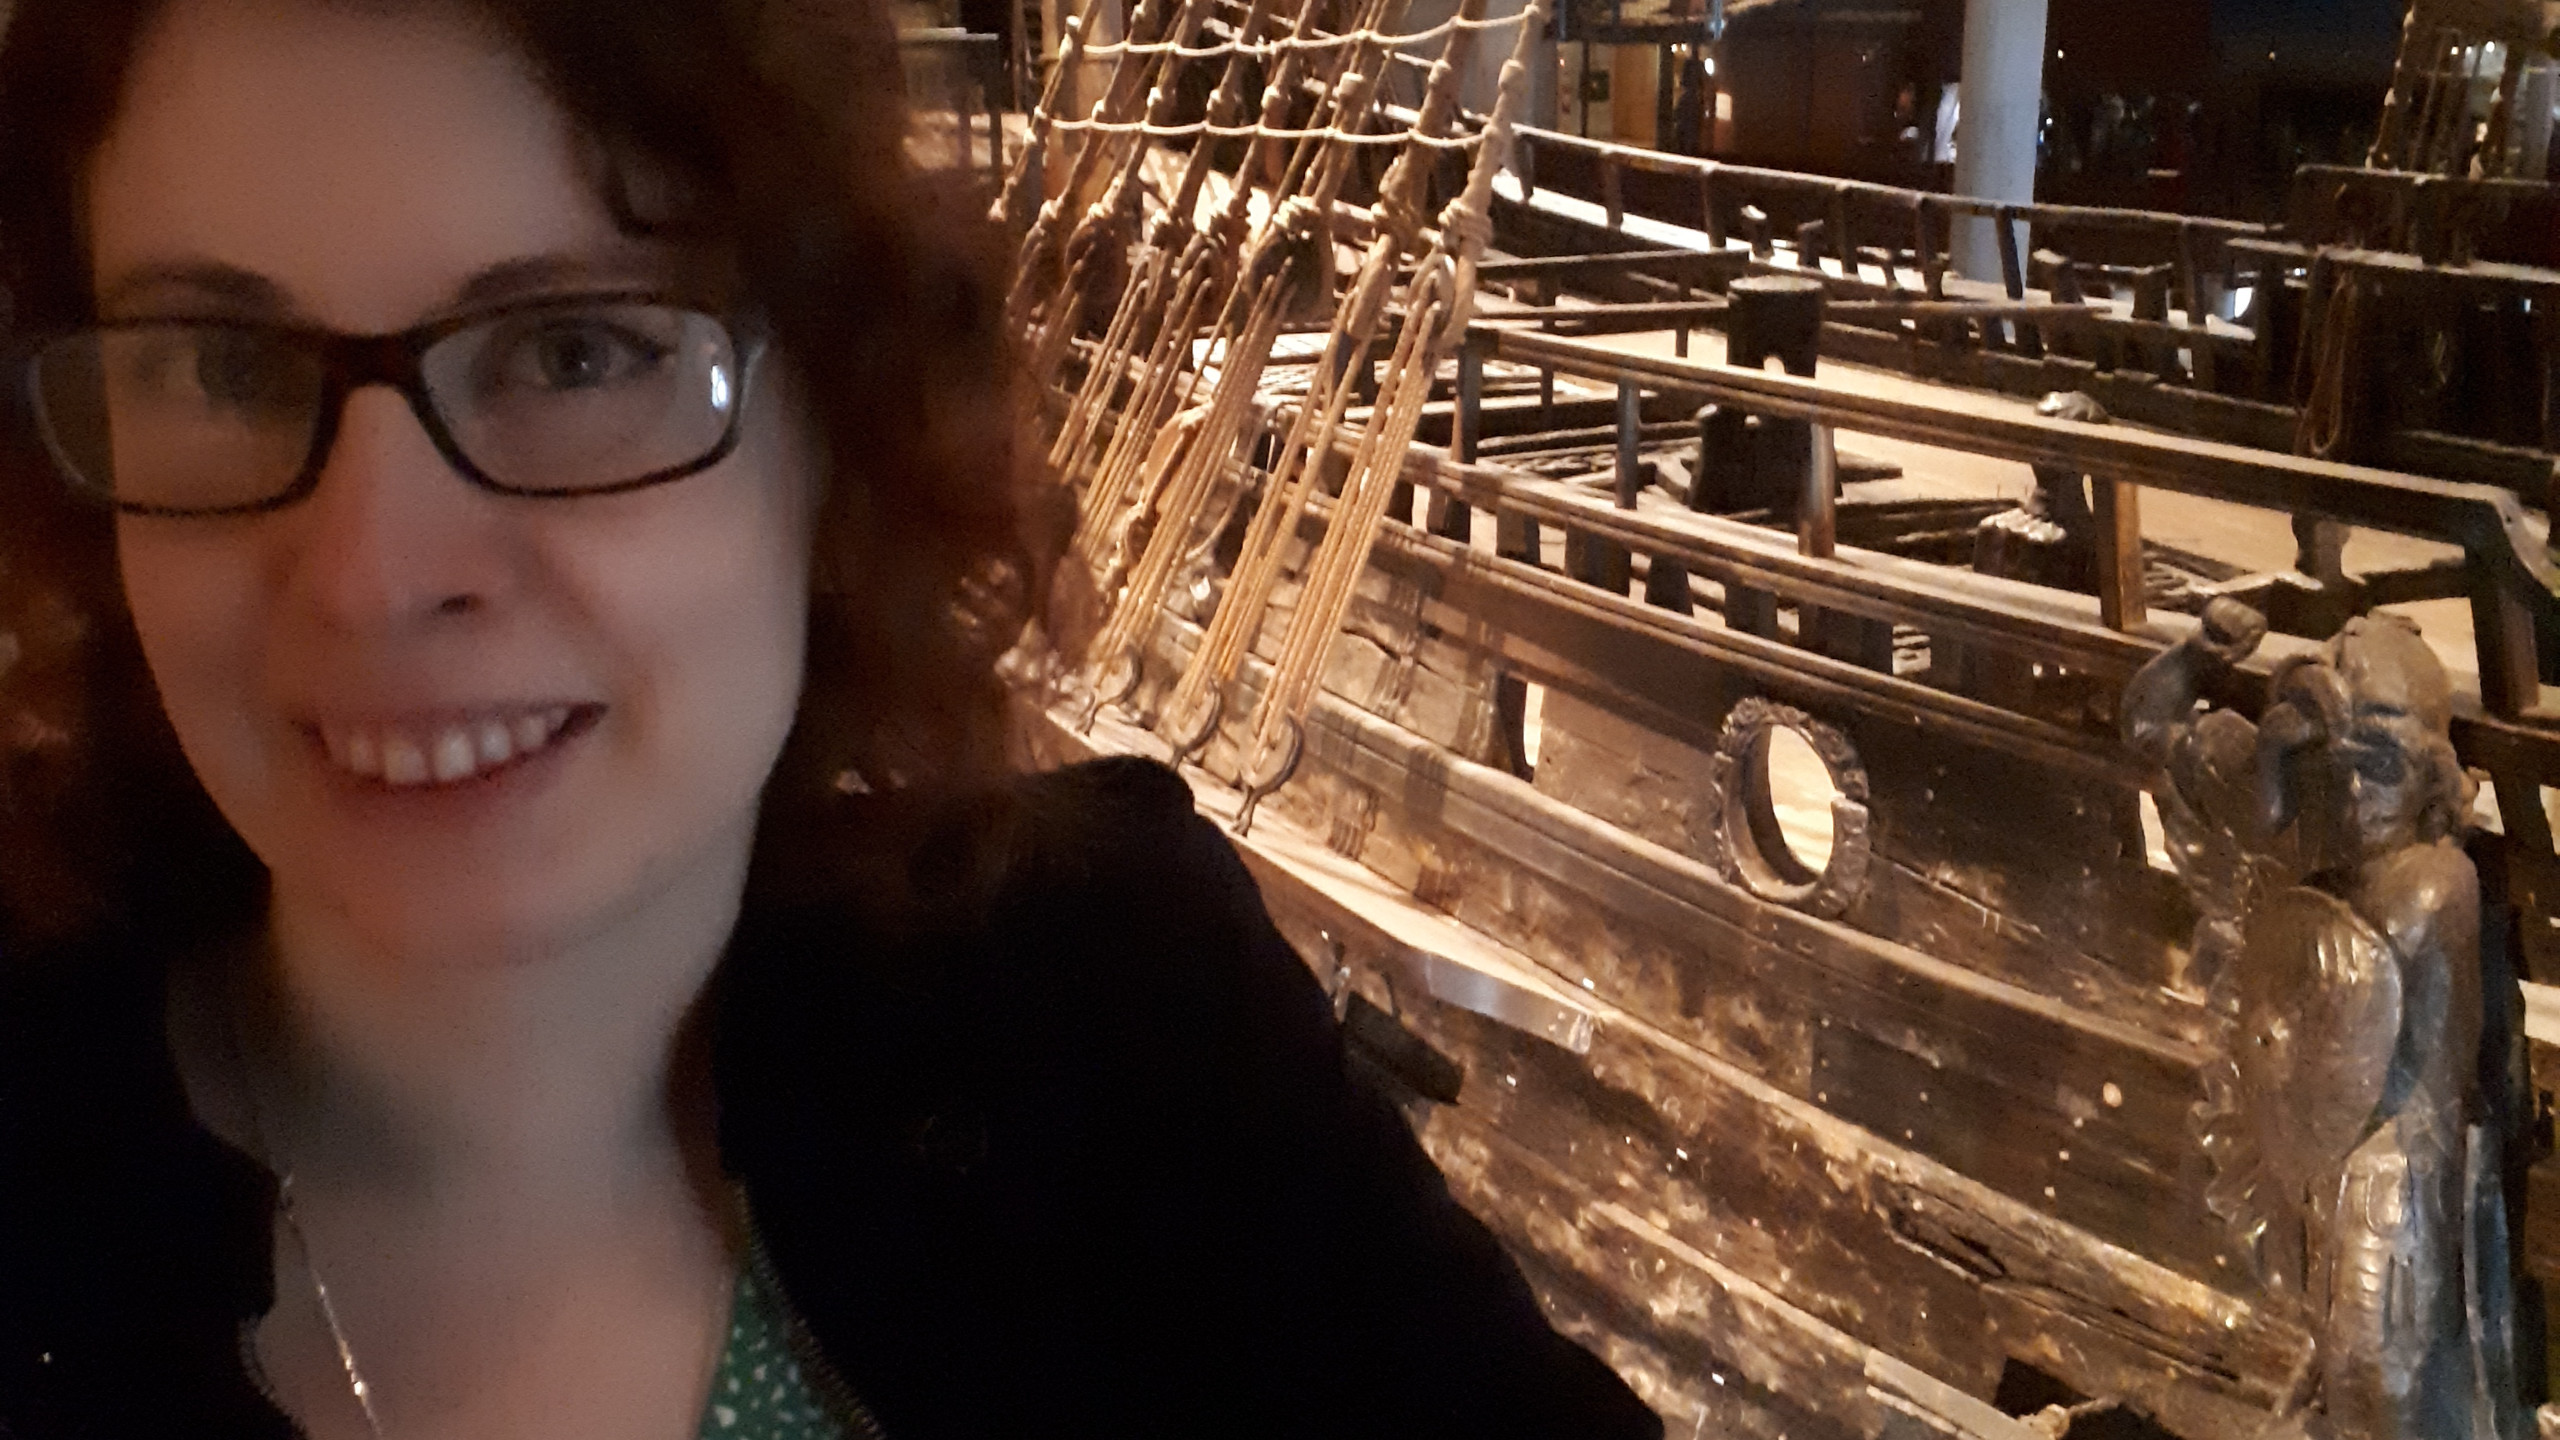 and even more boats..  We visited the museum of the ship Vasa that sank 1628 and got salvaged 1961, super cool stuff!